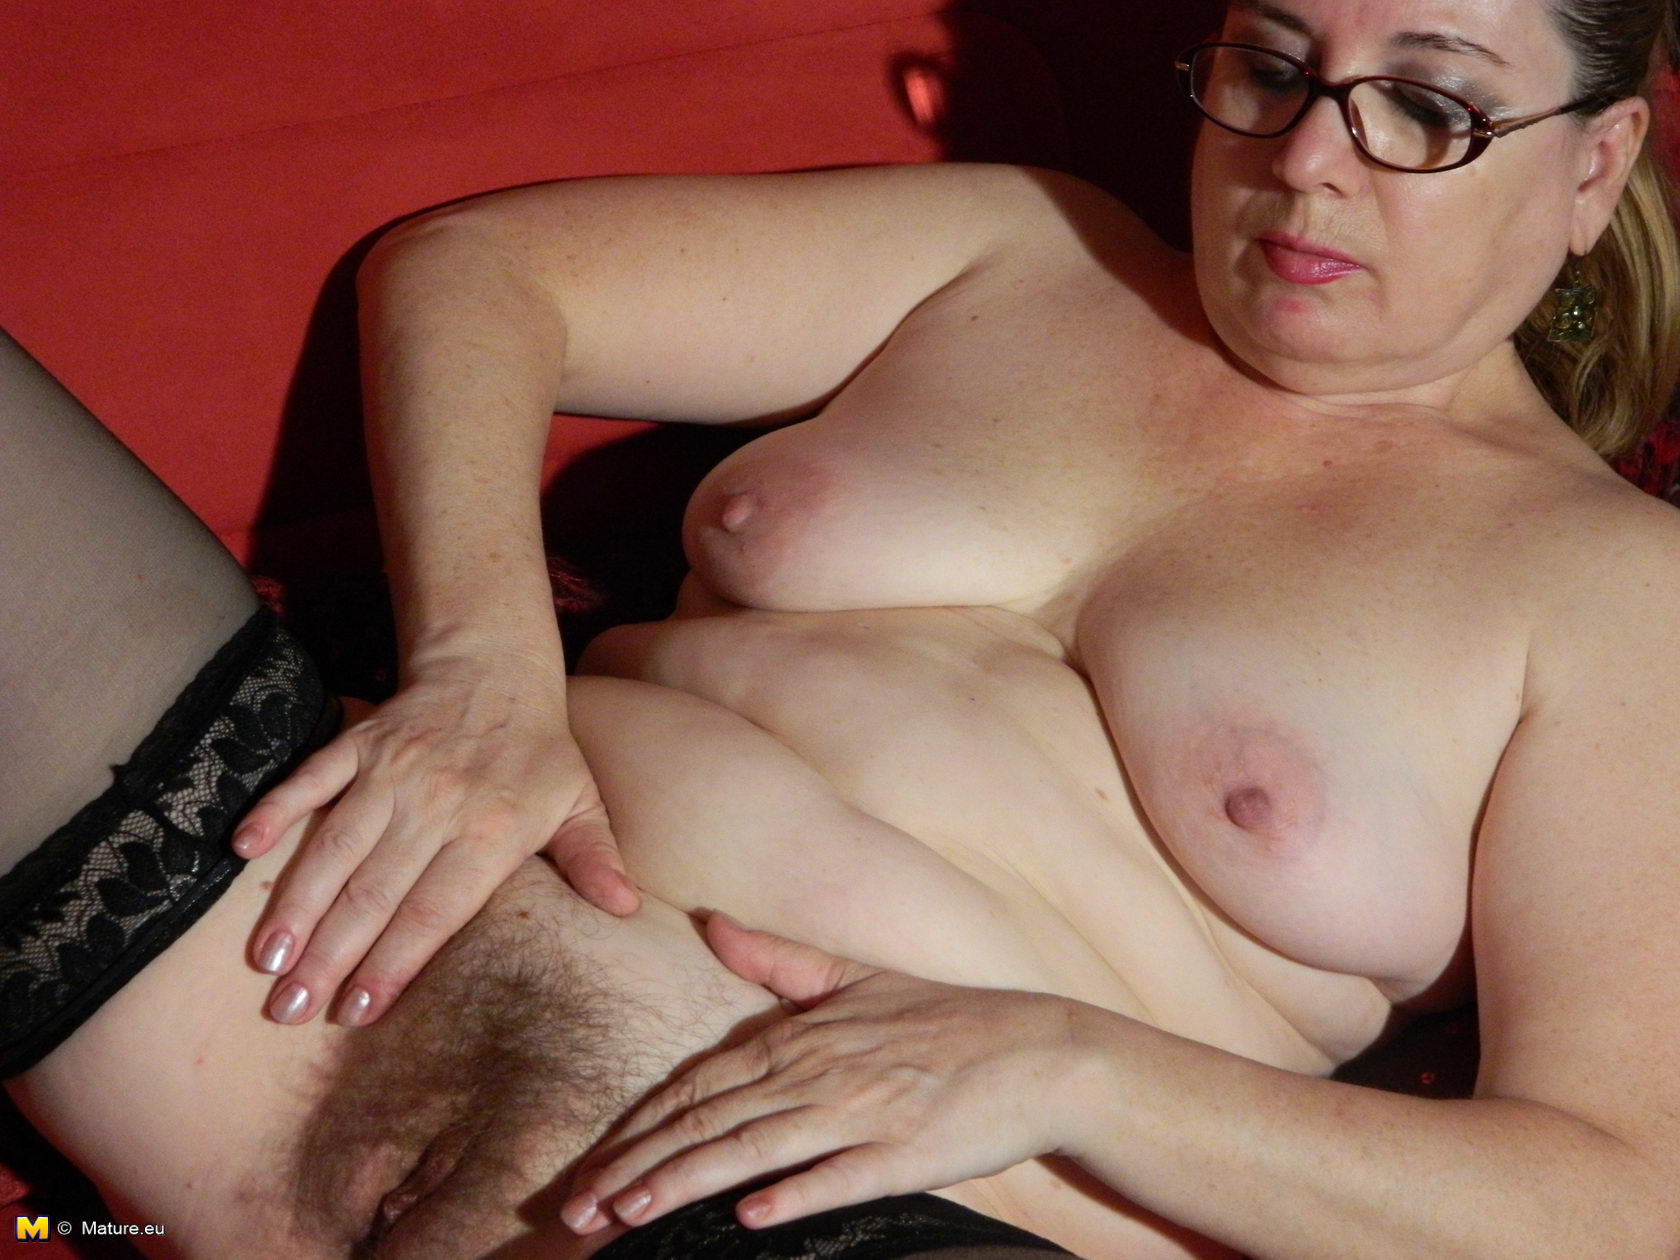 Maybe, were old mature mom hairy porn can suggest